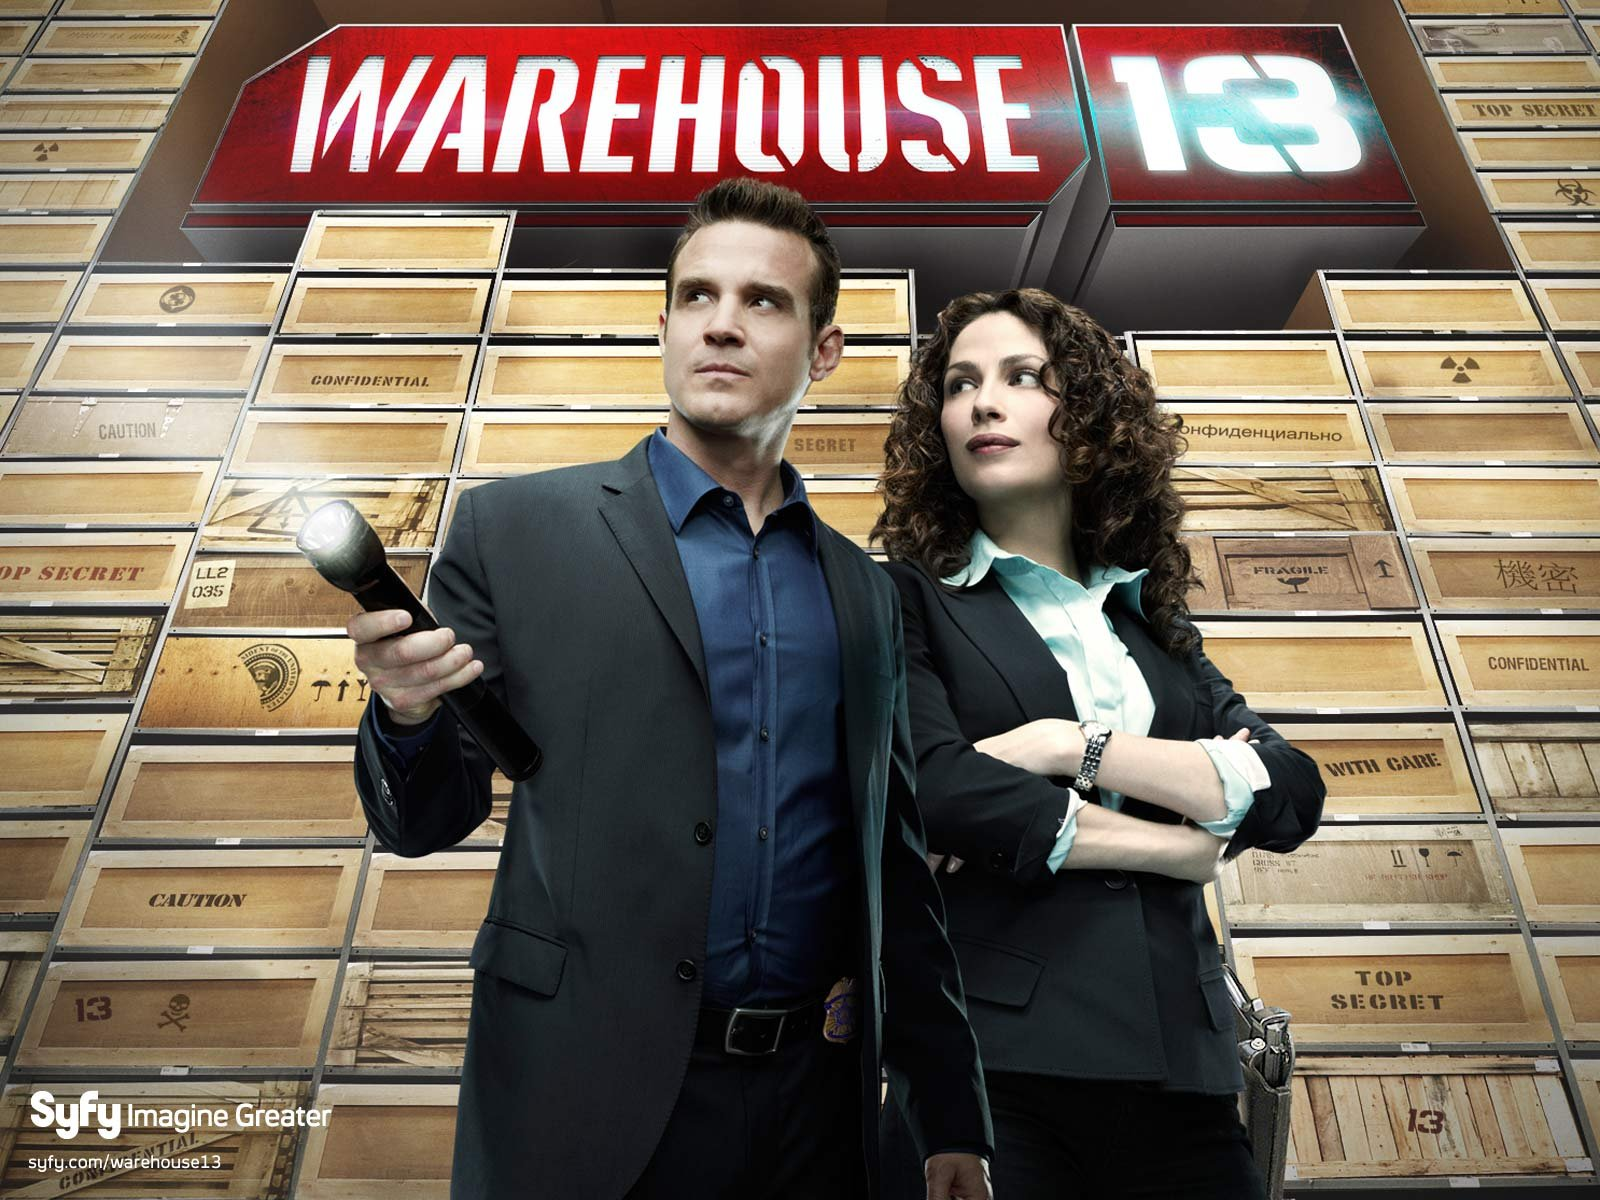 Warehouse 13 Backgrounds, Compatible - PC, Mobile, Gadgets| 1600x1200 px